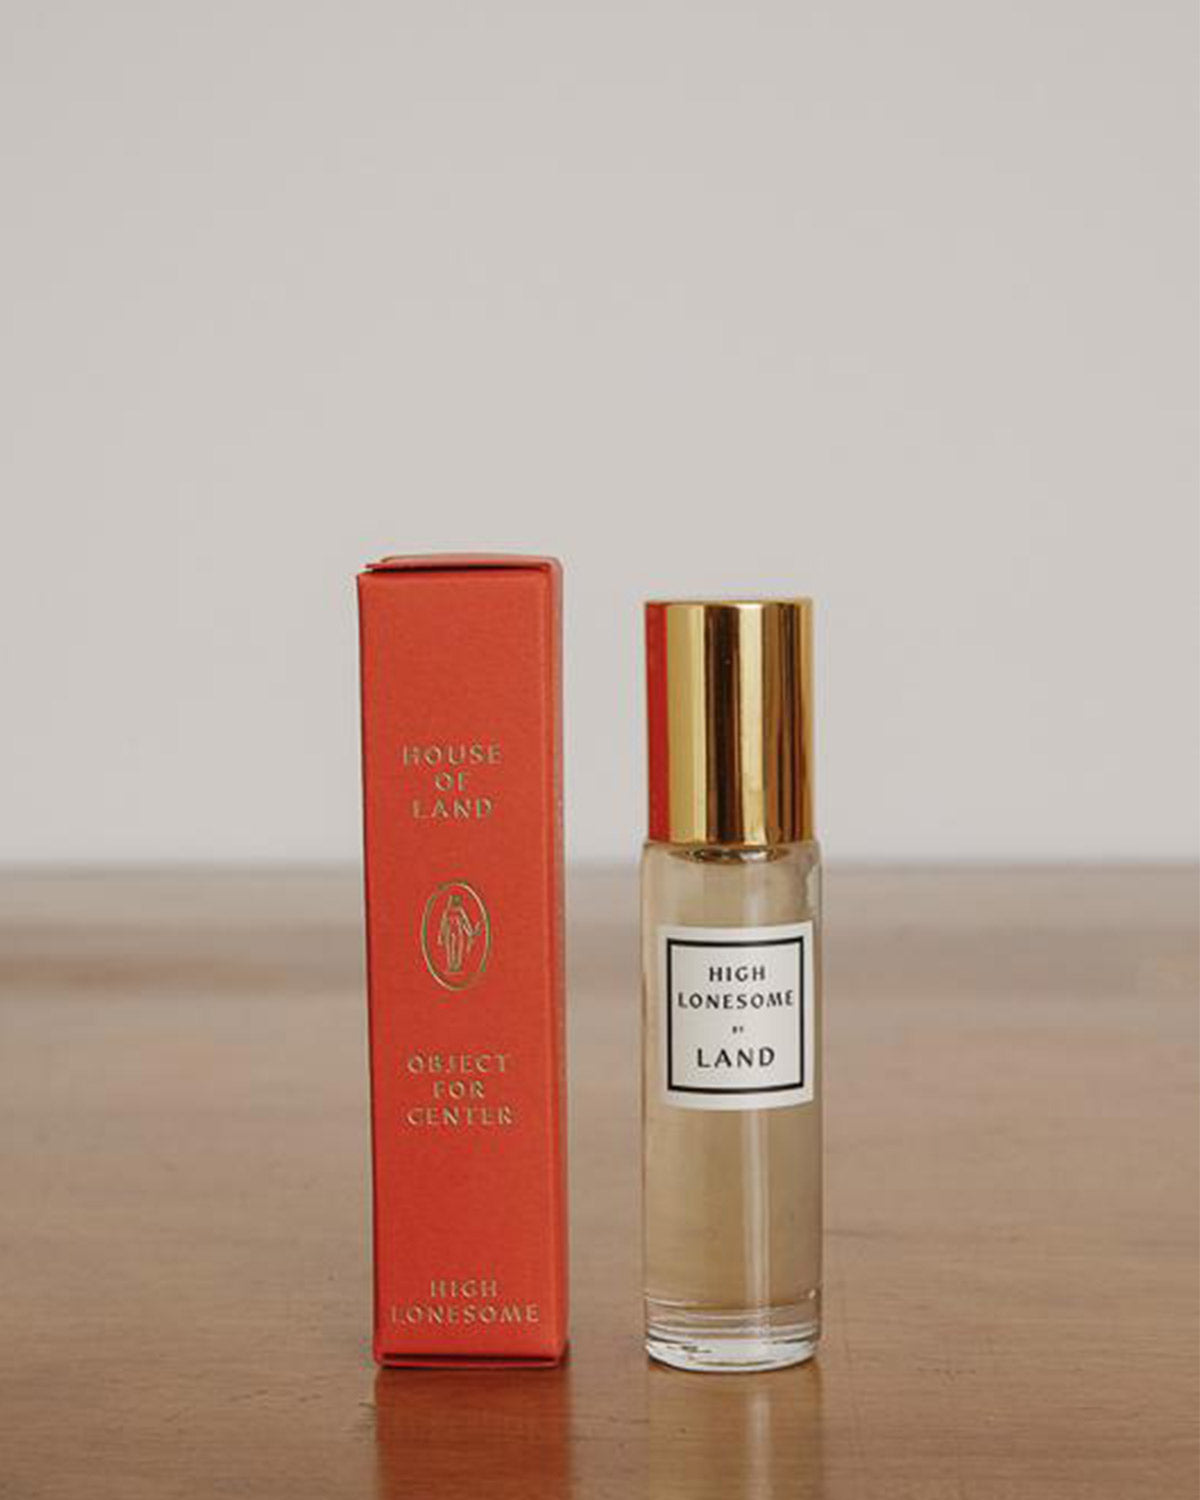 Unisex Fragrances in High Lonesome